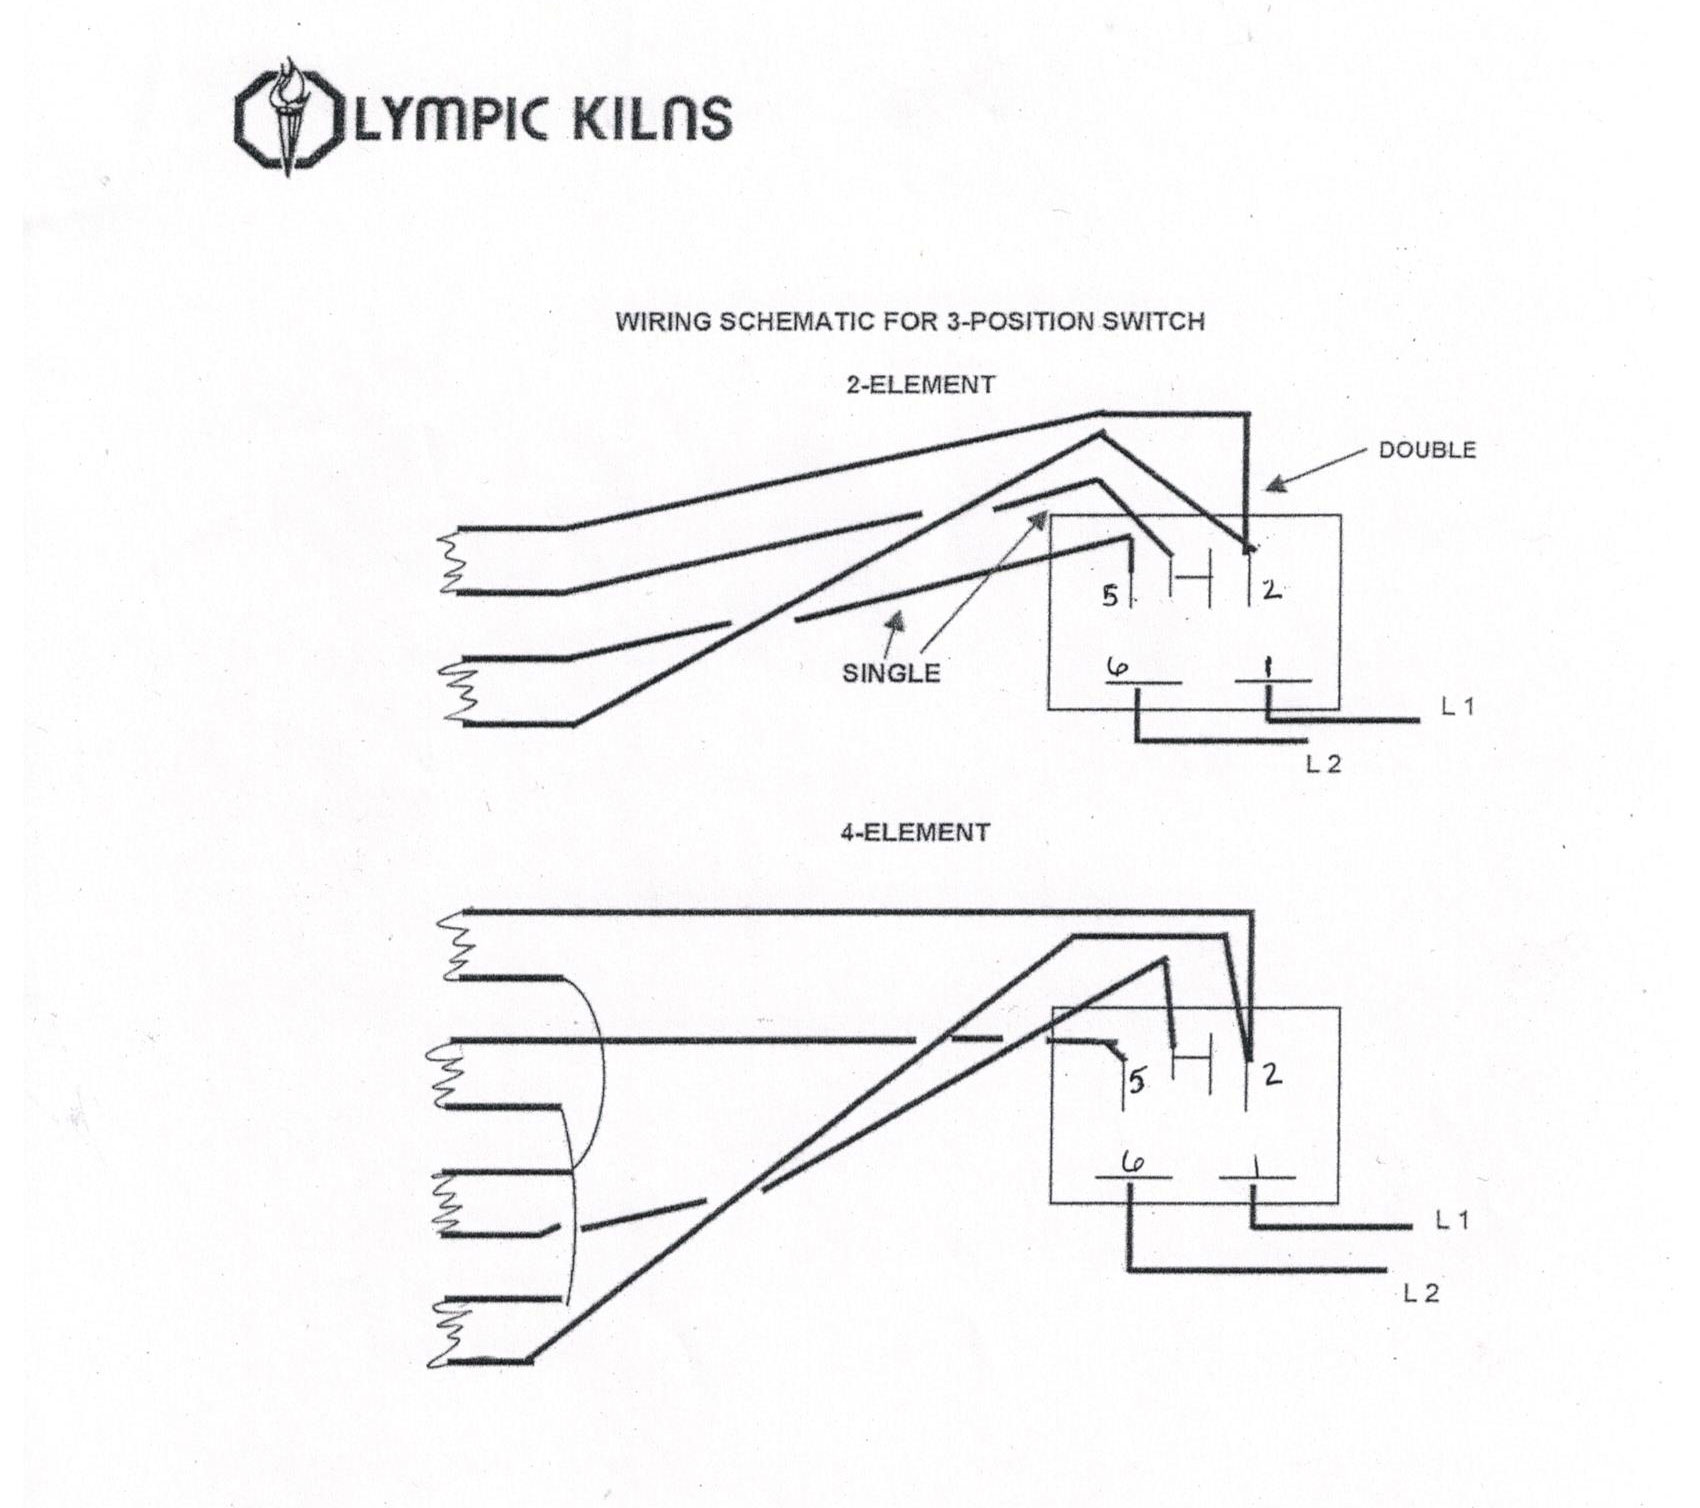 Wiring Diagram For Electric Kiln